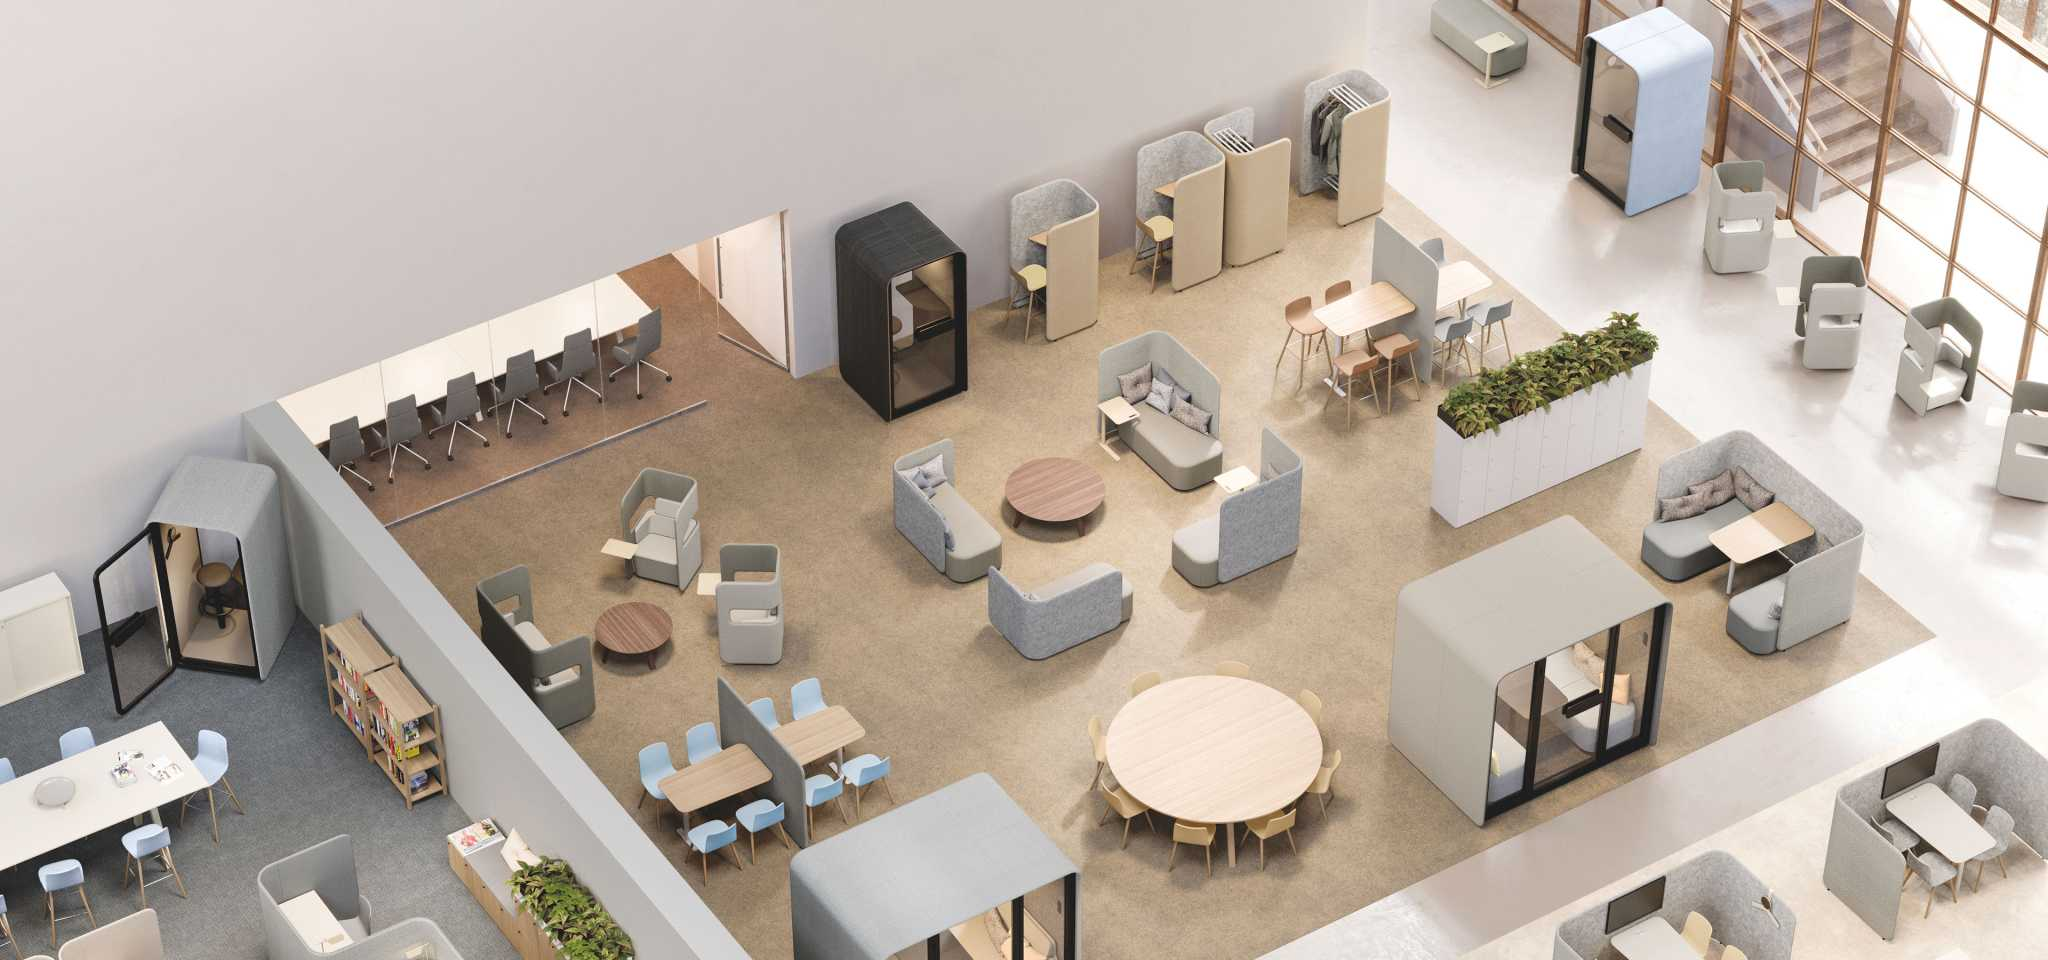 Activity based office made with Pod family by Martela